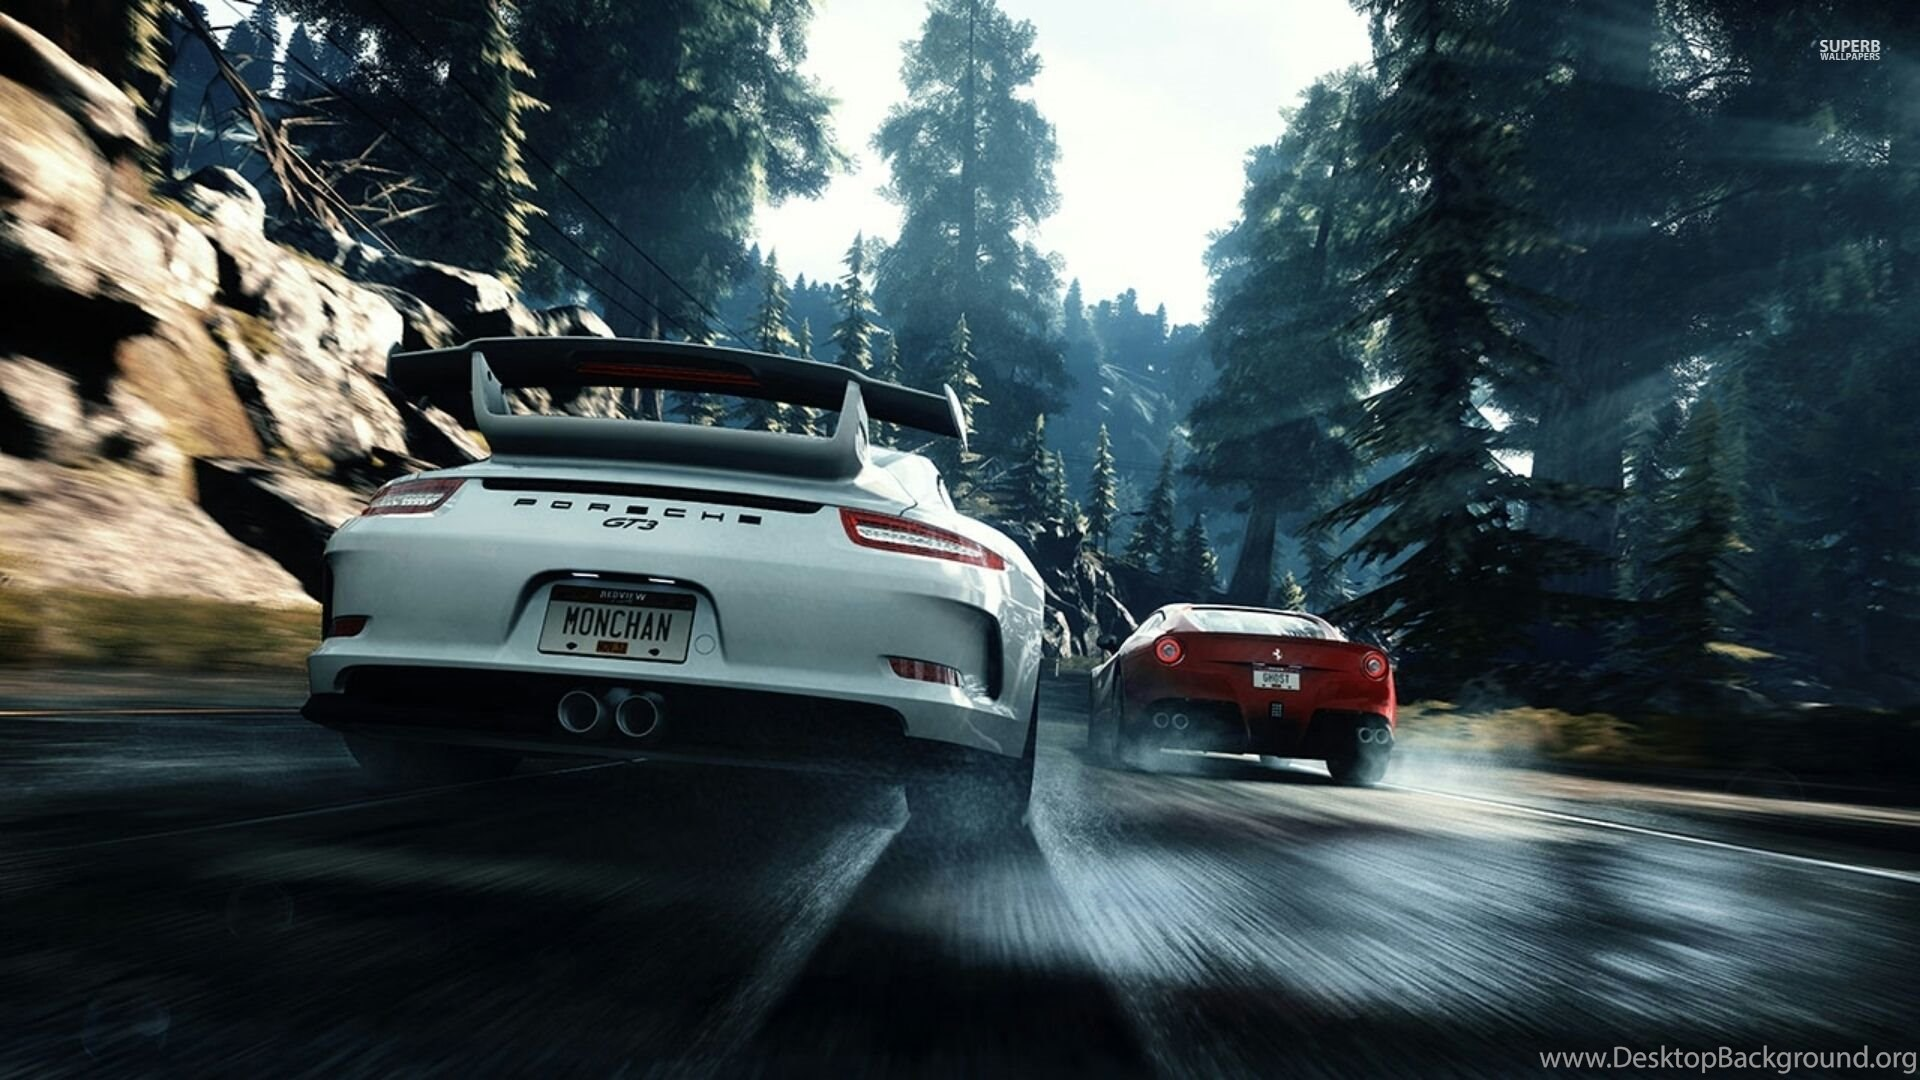 Need For Speed: Rivals, Game, Games, 1920x1080 HD ...Nfs Rivals Wallpaper For Pc